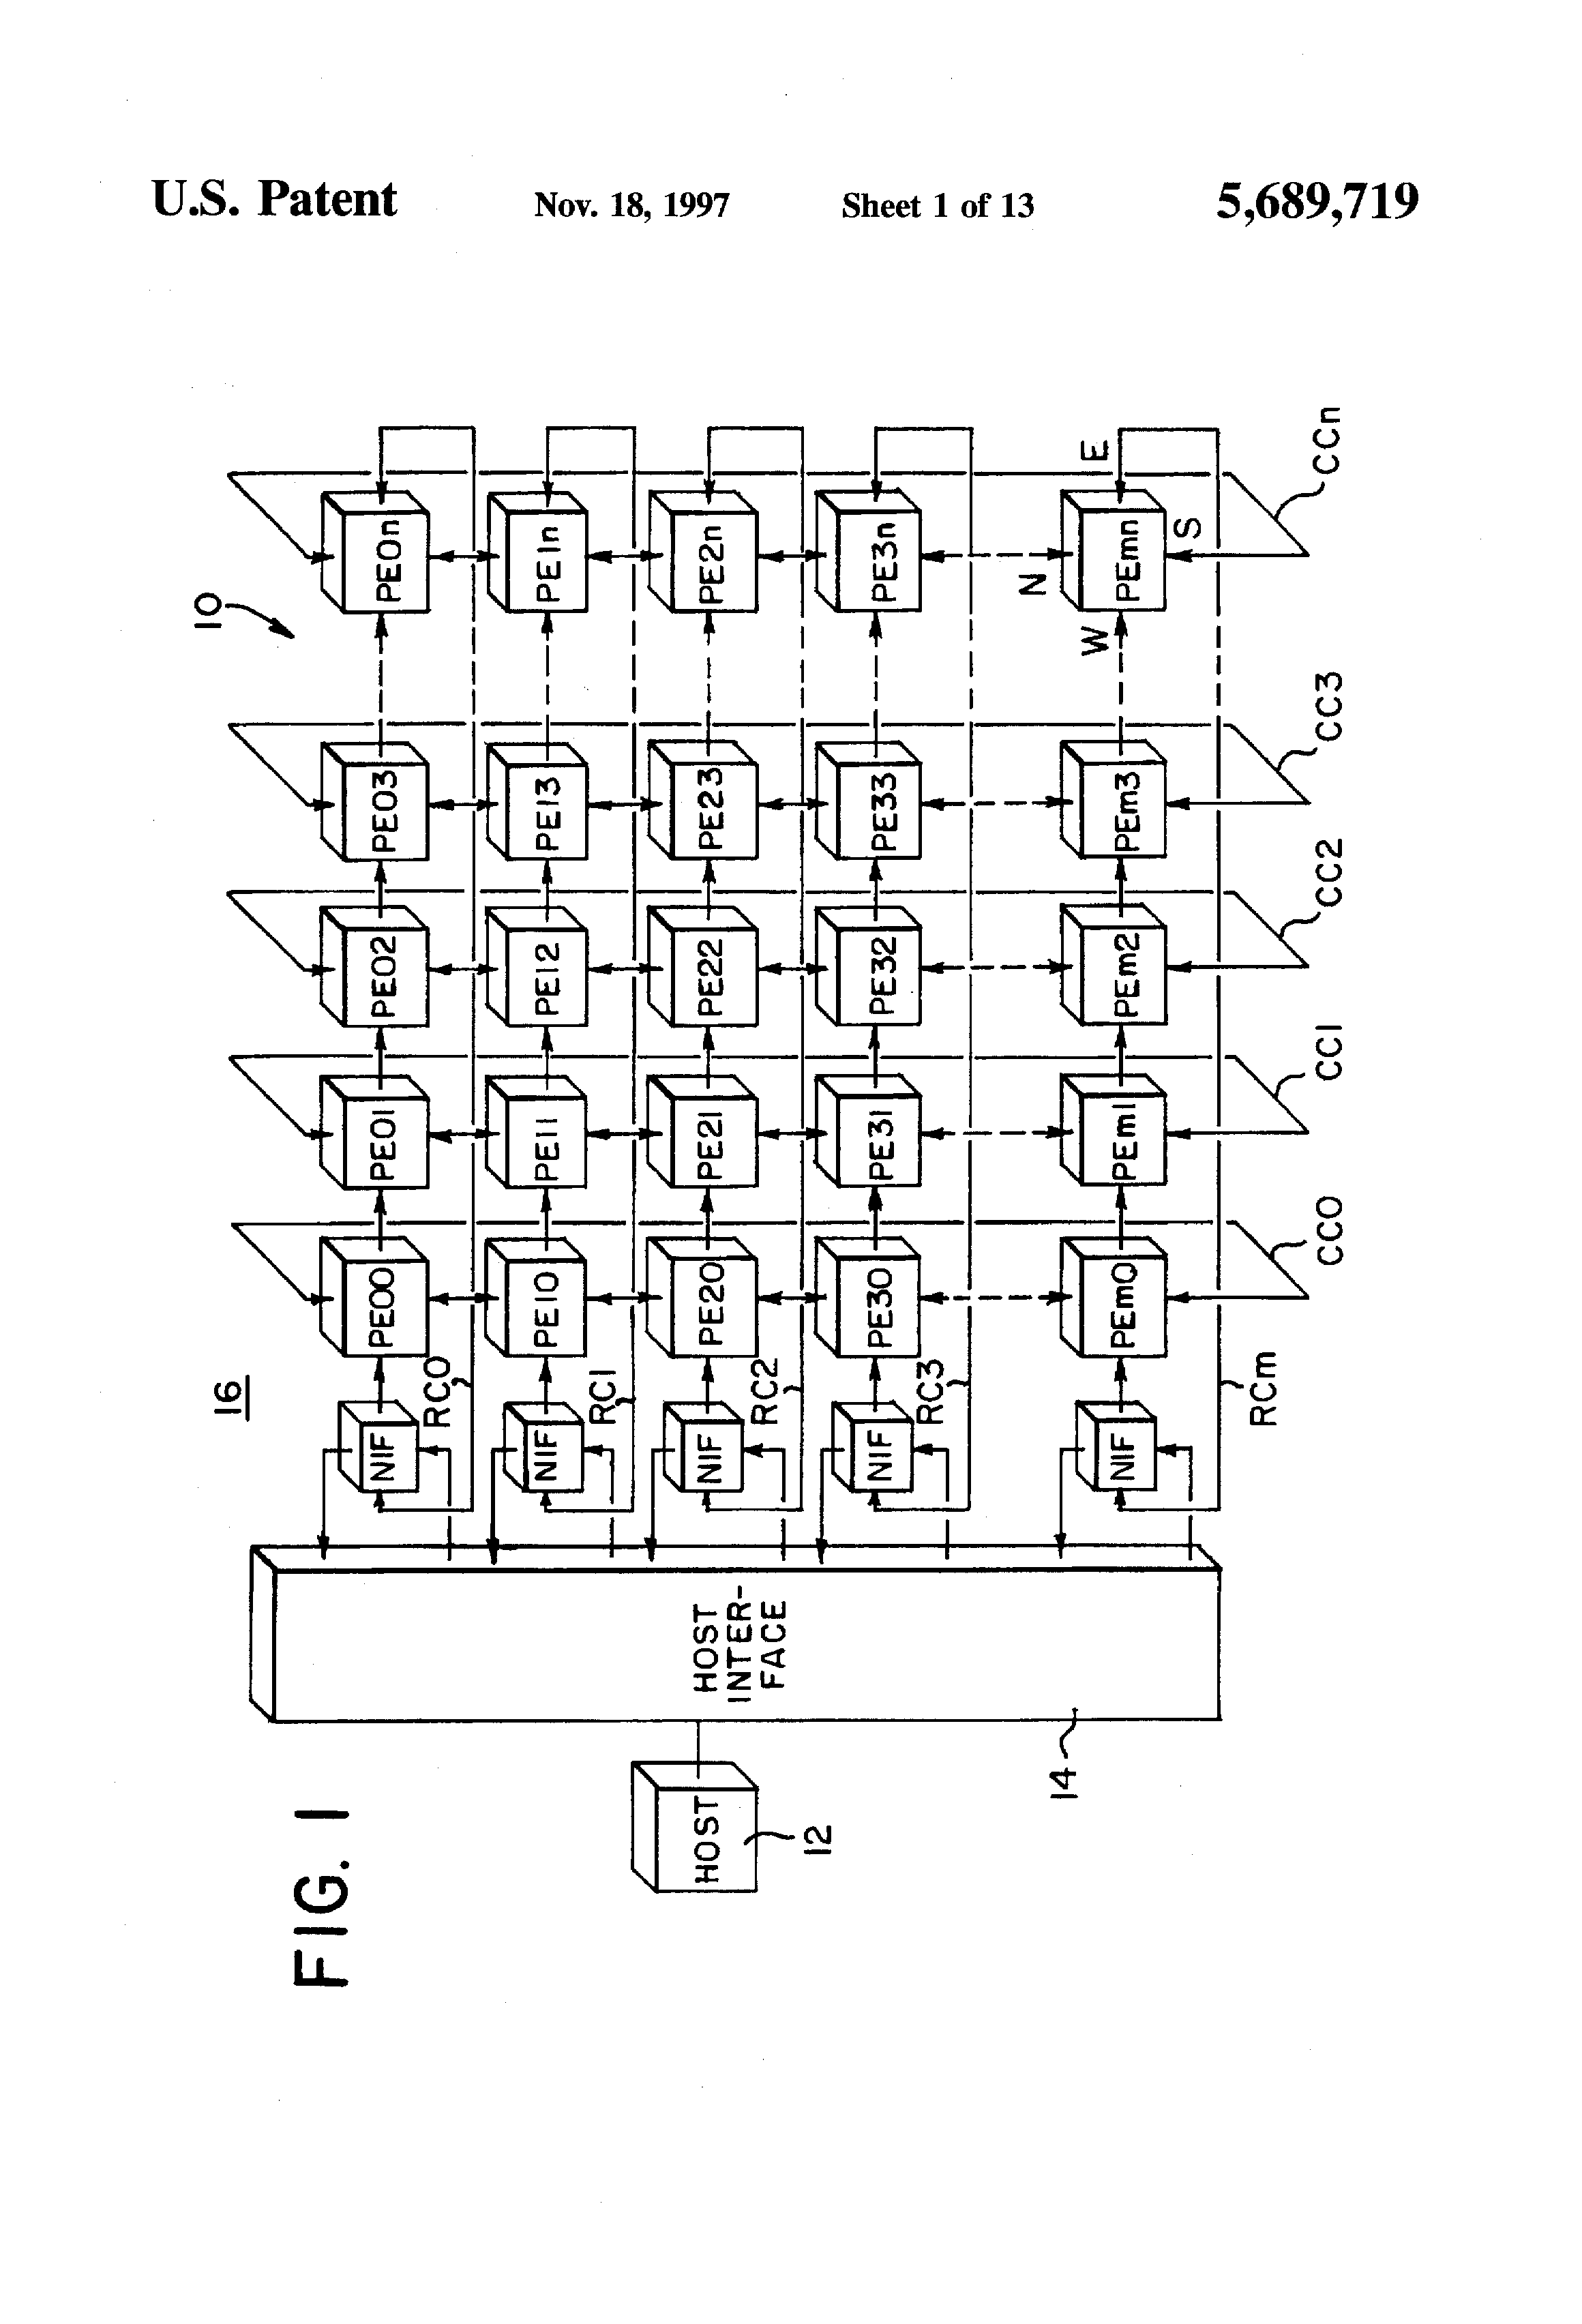 Parallel computer system including processing elements